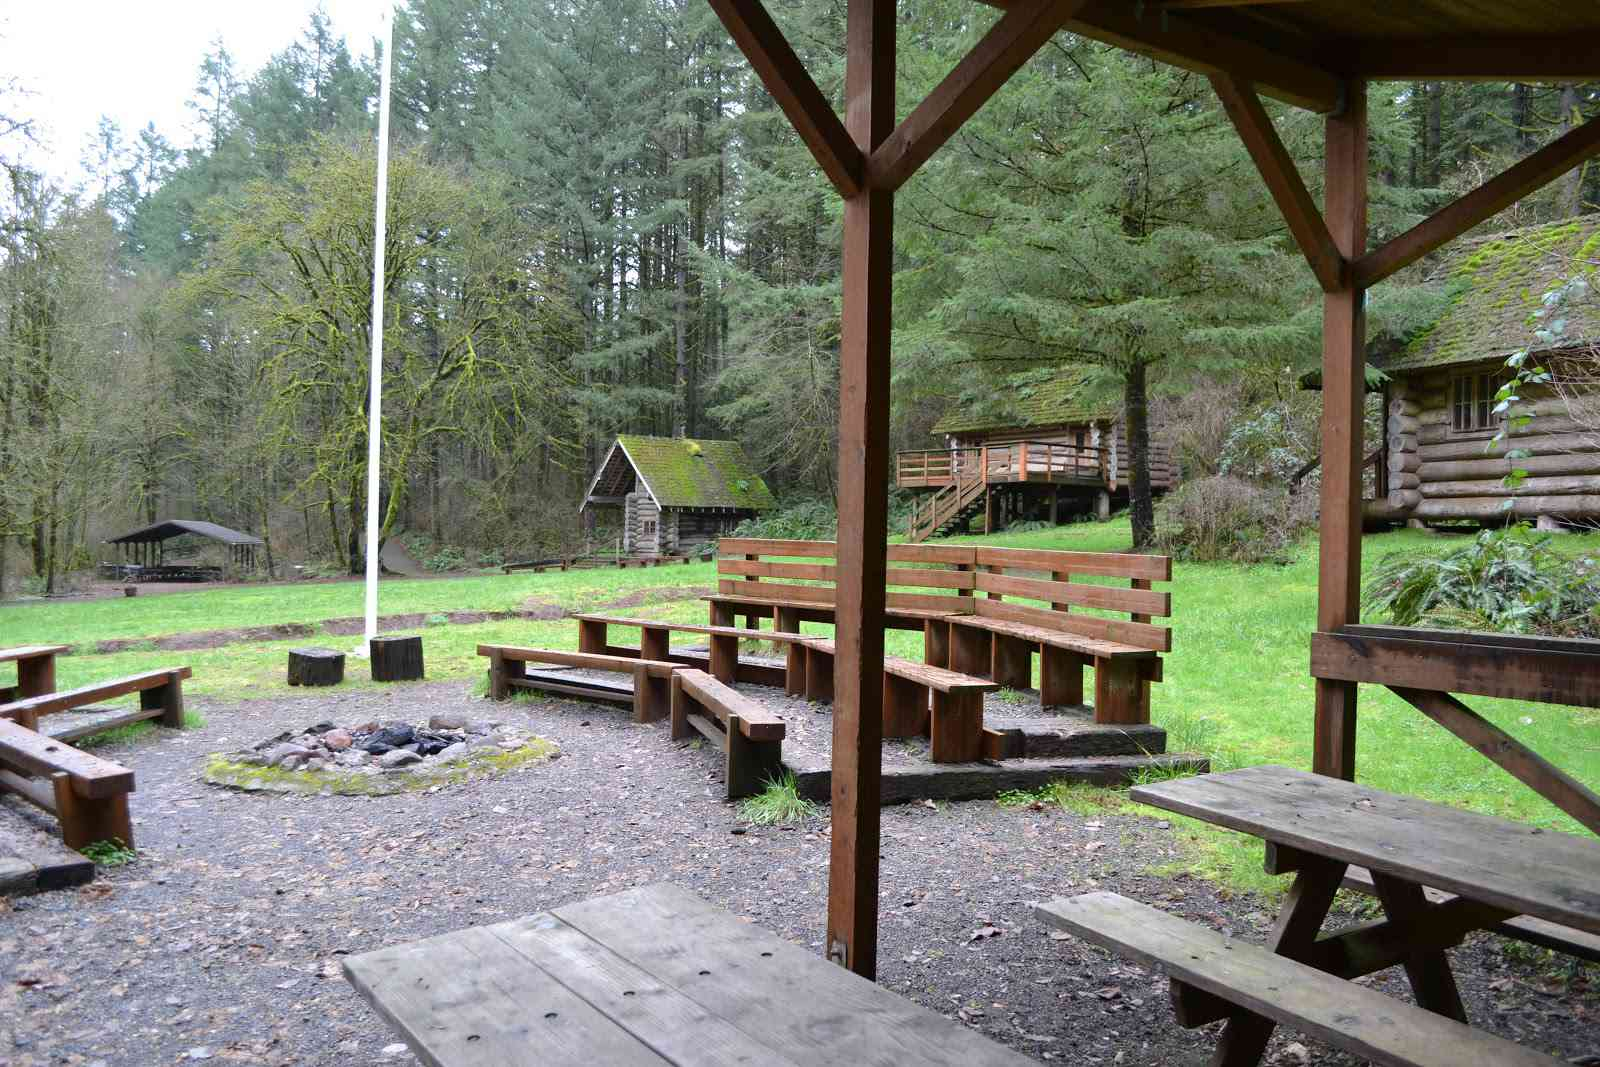 Picnic area with fire pit